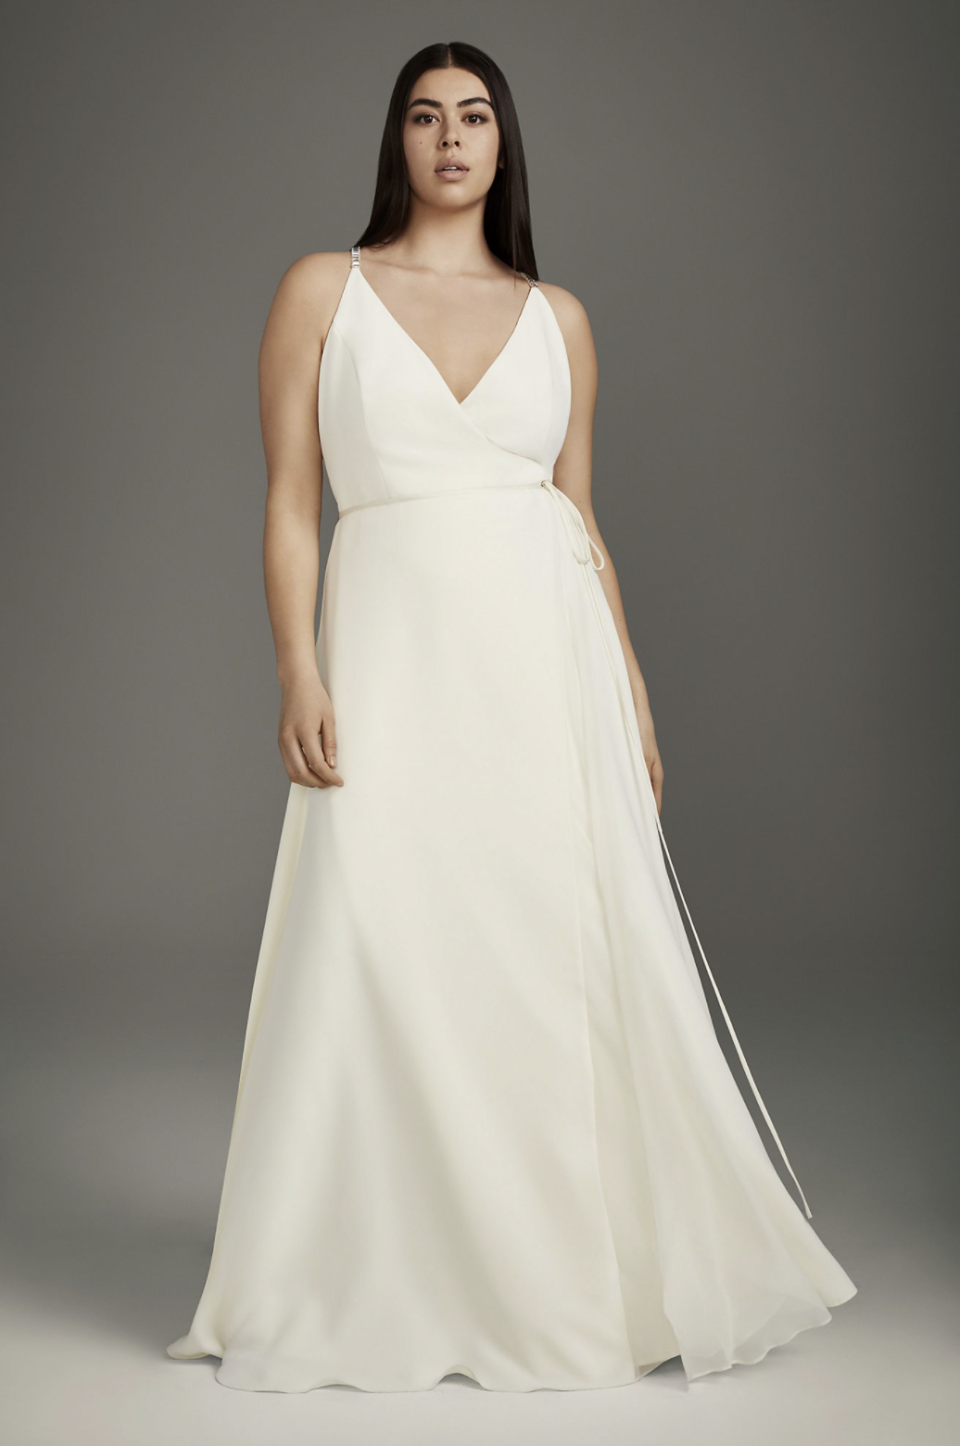 White by Vera Wang Plus Wrap Gown with Jeweled Crisscross Low Back (Photo via David's Bridal)